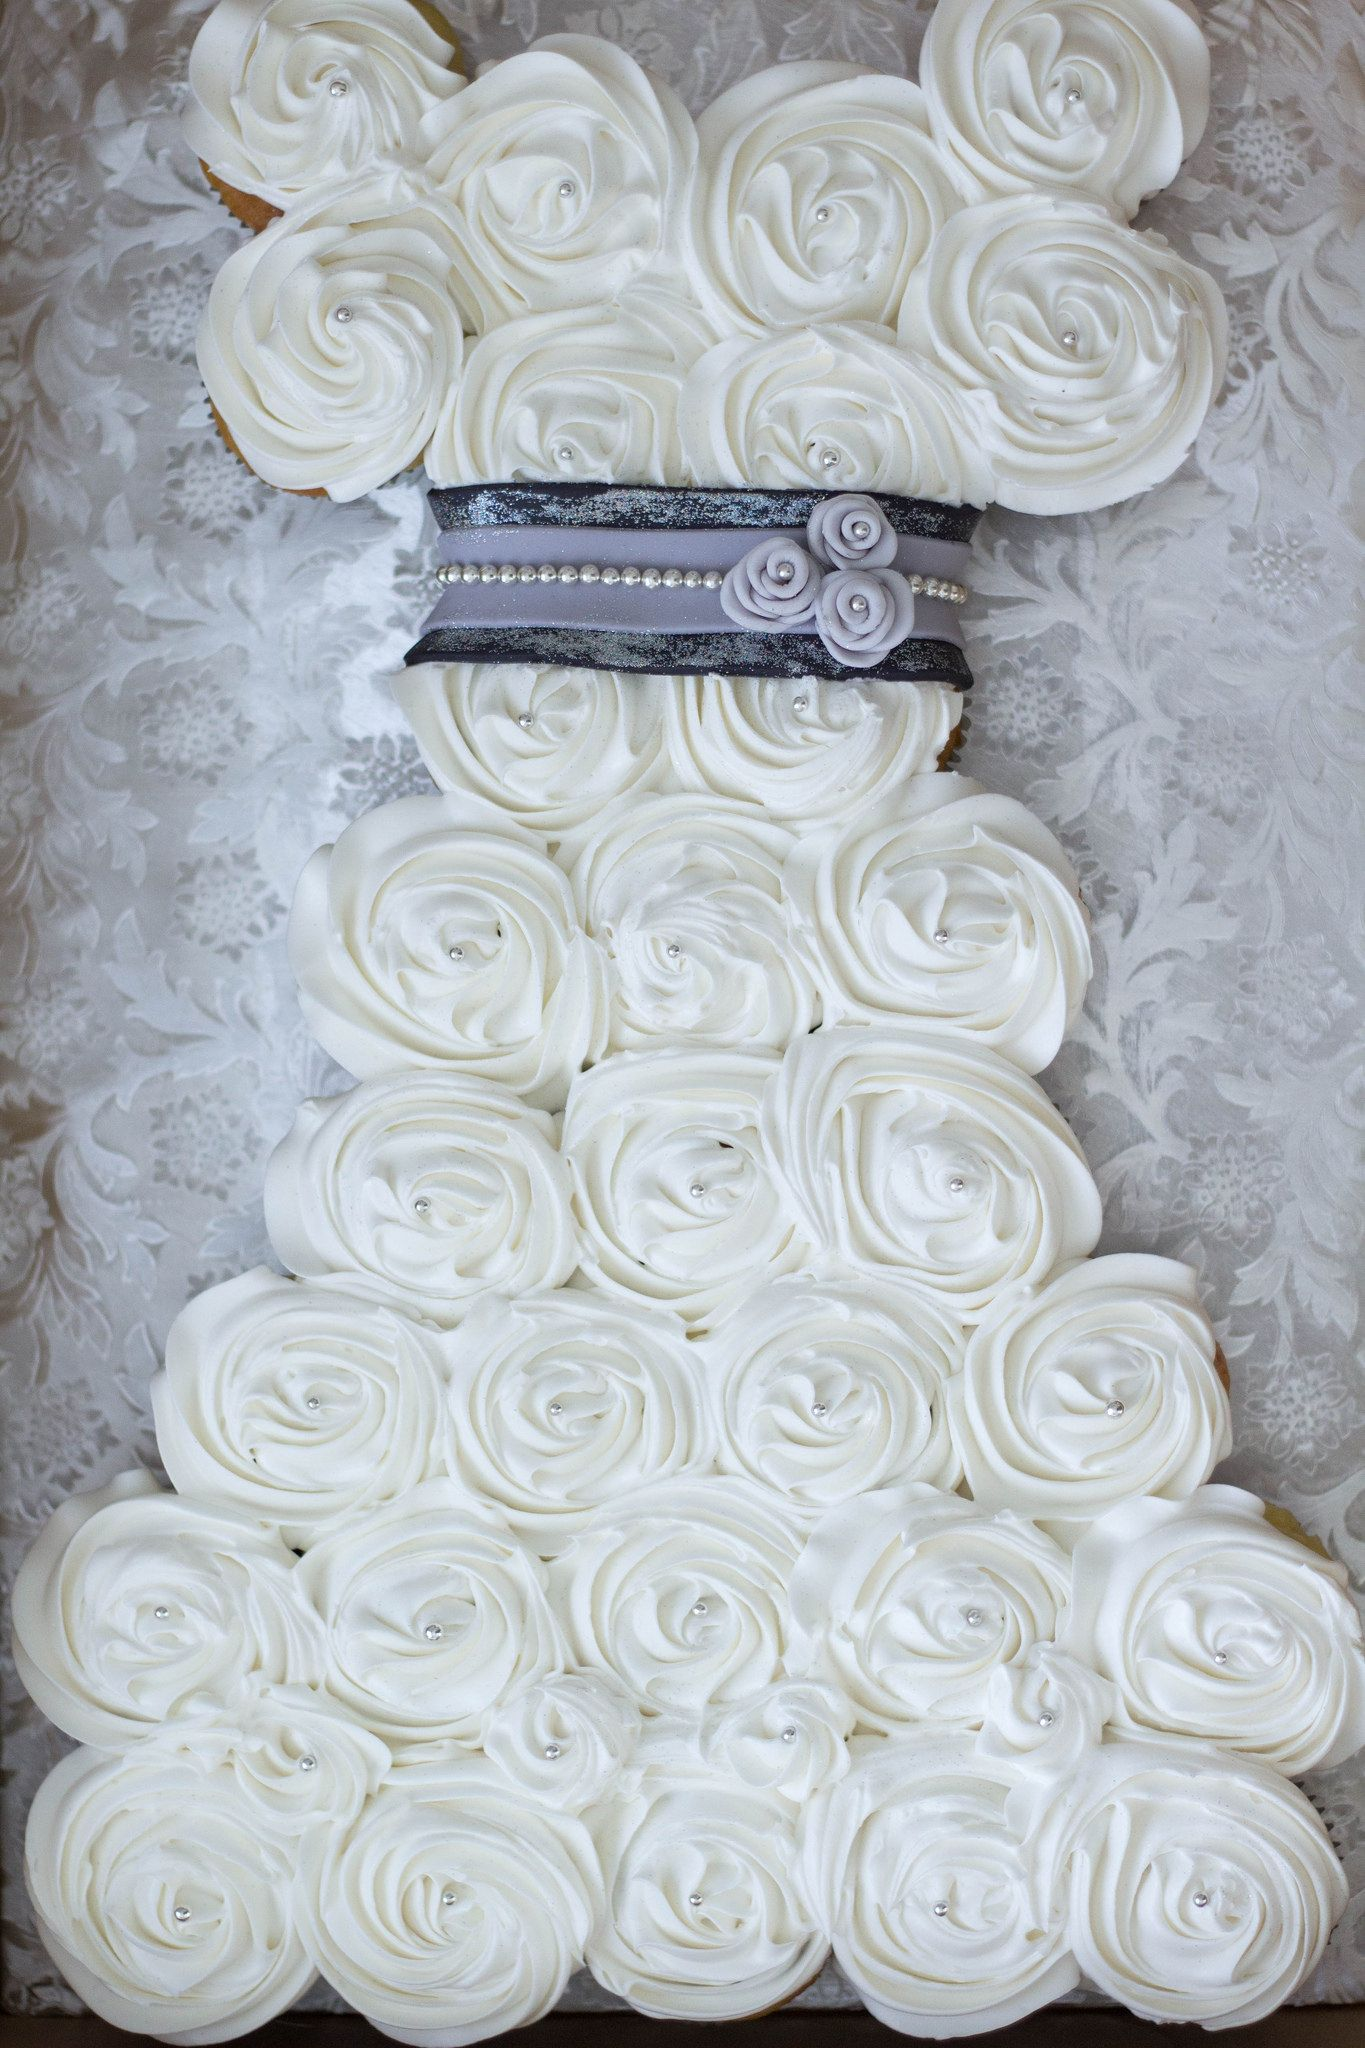 Black + Silver Wedding Dress Cupcake Cake | Pinterest | Wedding ...